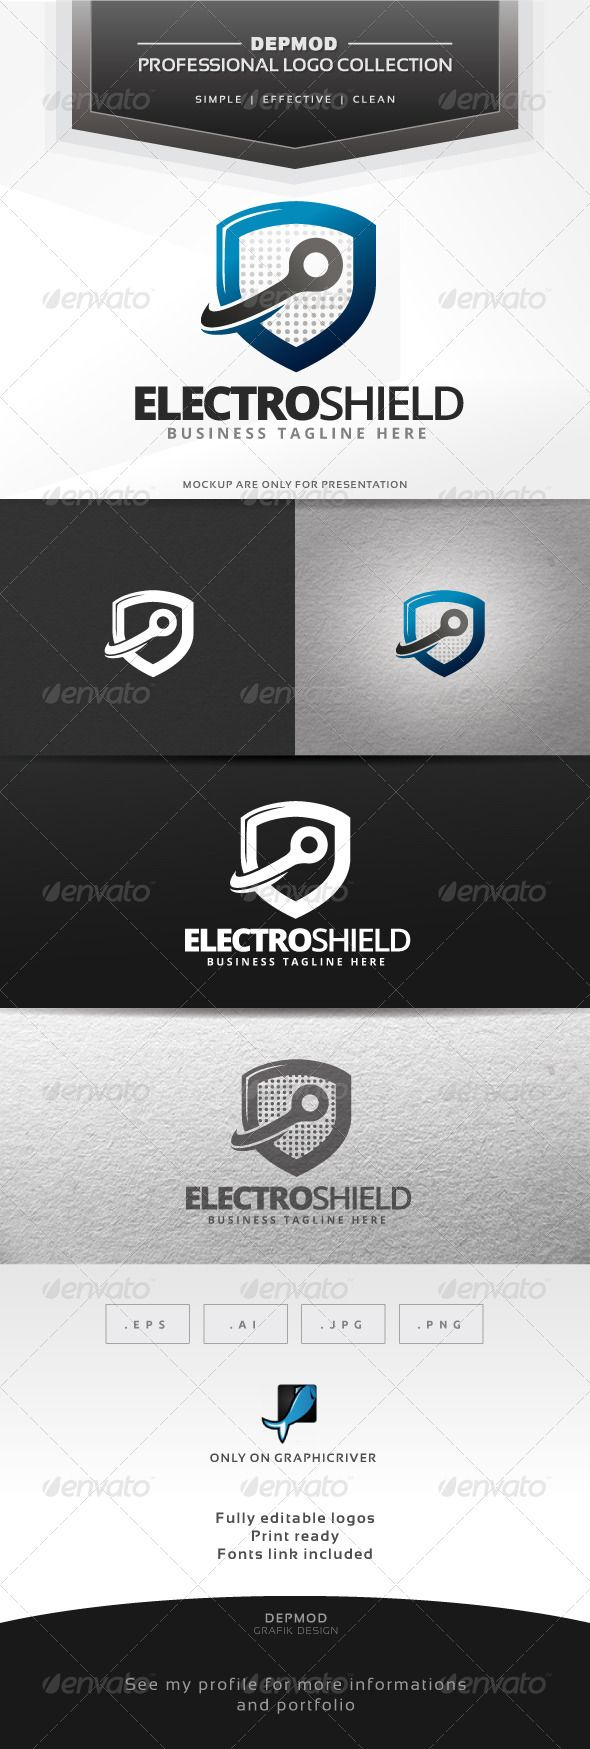 Electro Shield Logo ... antivirus, brand, branding, business, component, electro, electronic, endurance, force, identity, insurance, internet, it, online, online submission, print, protect, protection, safe, safety, shield, strength, strong, tough, vectors, web